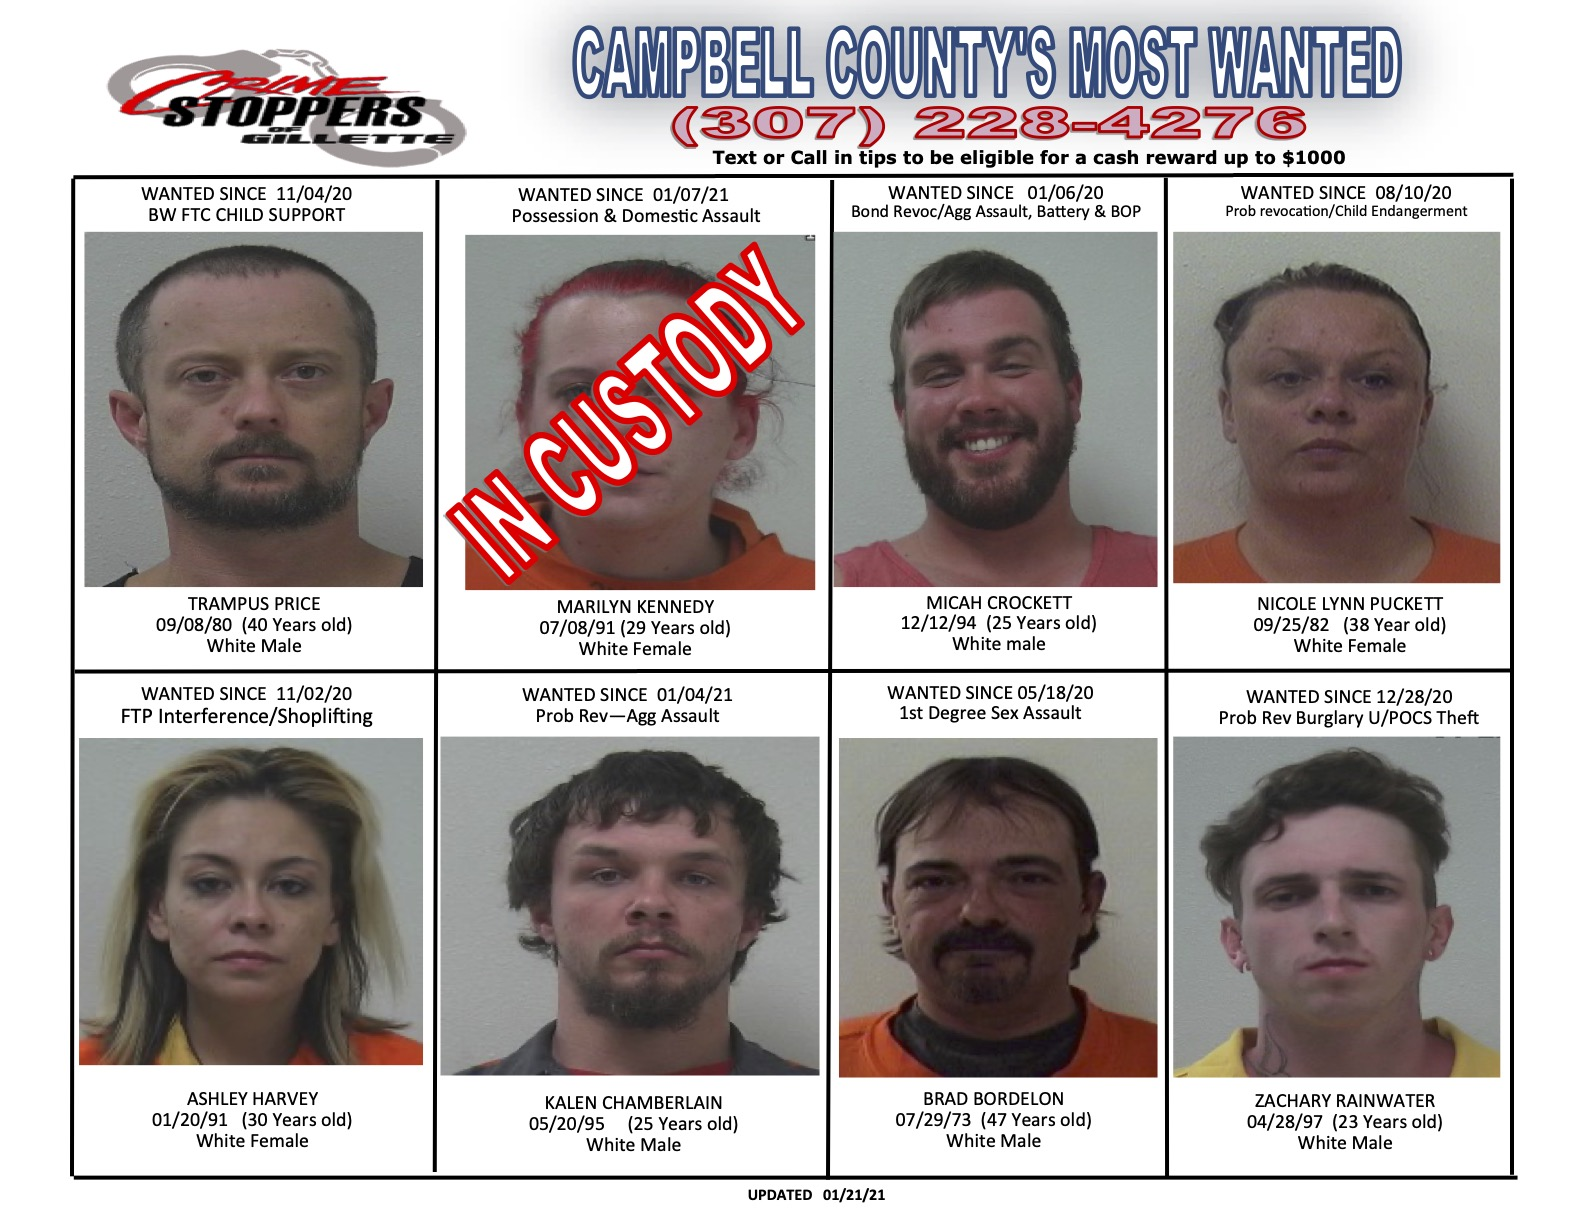 Campbell County's Most Wanted Jan. 26, 2021